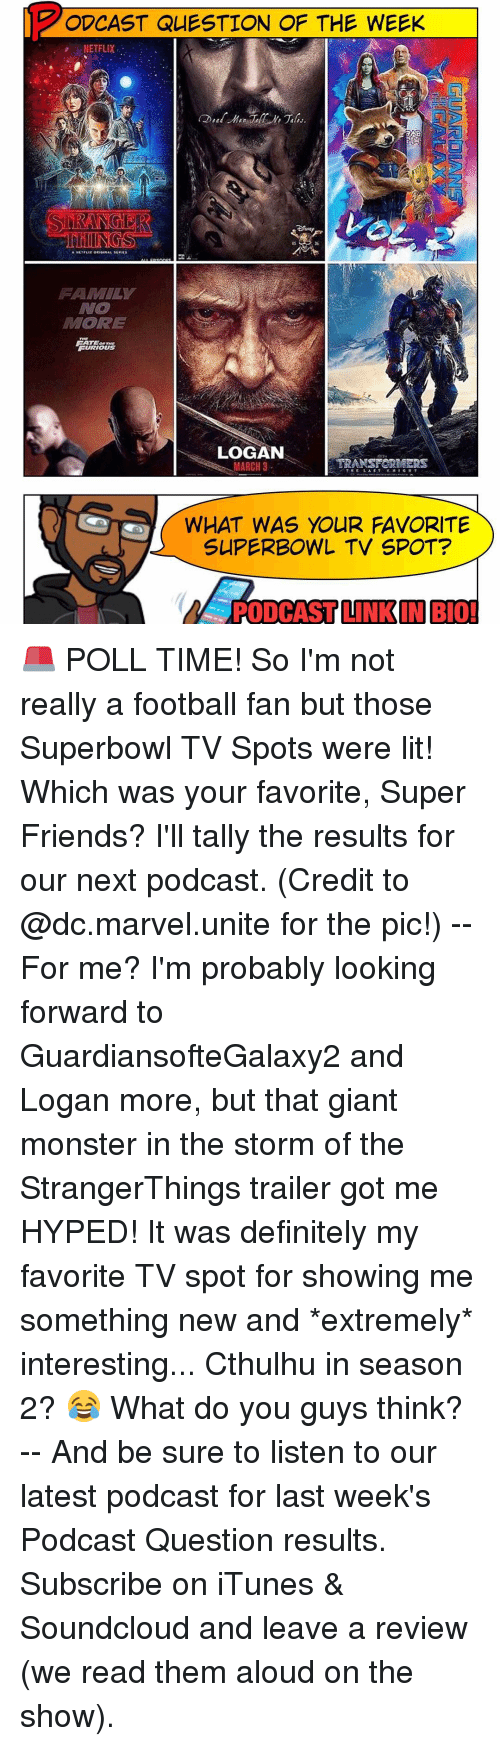 Memes, SoundCloud, and iTunes: ODCAST QUESTION OF THE WEEK  NETFLIX  ORE  FURIOUS  LOGAN  TRANSFORMERS  MARCH 3  WHAT WAS YOUR FAVORITE  SUPERBOWL TV SPOT?  PODCAST LINKIN BIO! 🚨 POLL TIME! So I'm not really a football fan but those Superbowl TV Spots were lit! Which was your favorite, Super Friends? I'll tally the results for our next podcast. (Credit to @dc.marvel.unite for the pic!) -- For me? I'm probably looking forward to GuardiansofteGalaxy2 and Logan more, but that giant monster in the storm of the StrangerThings trailer got me HYPED! It was definitely my favorite TV spot for showing me something new and *extremely* interesting... Cthulhu in season 2? 😂 What do you guys think? -- And be sure to listen to our latest podcast for last week's Podcast Question results. Subscribe on iTunes & Soundcloud and leave a review (we read them aloud on the show).